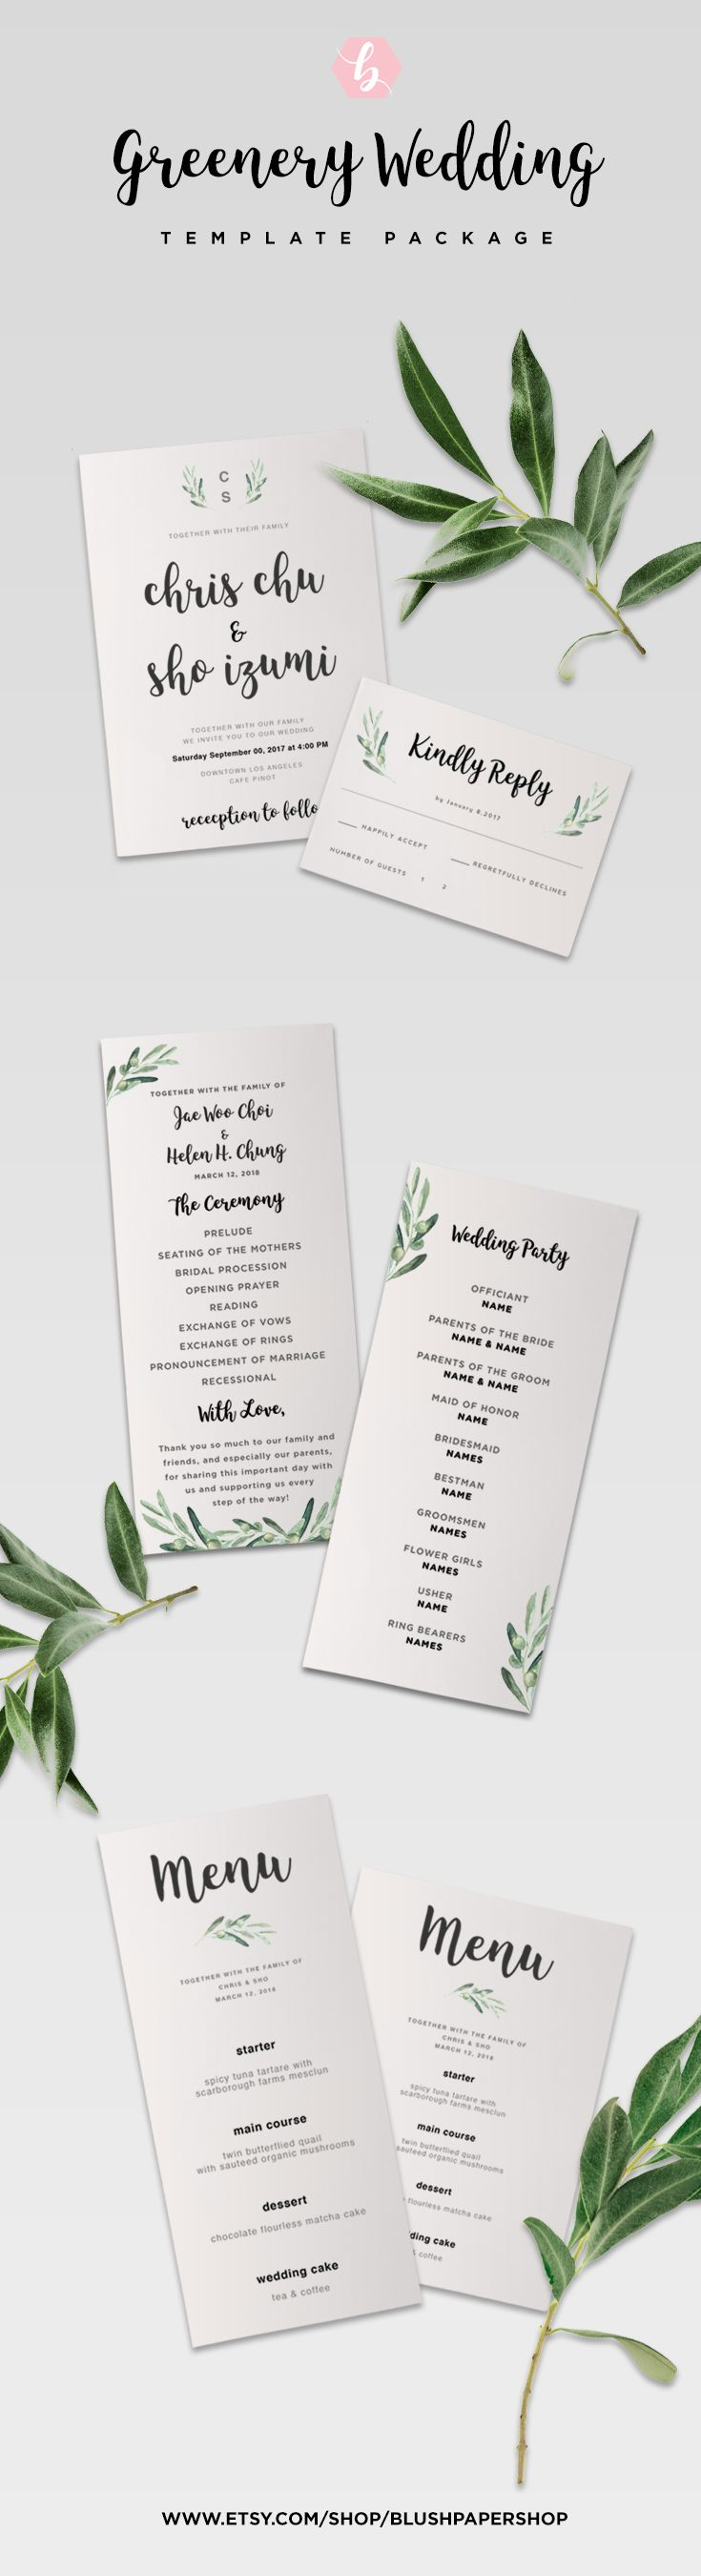 tulip wedding invitation templates%0A Now you can make a professional looking greenery wedding invitation  yourself  No need to download any fonts  just simply download the template   edit